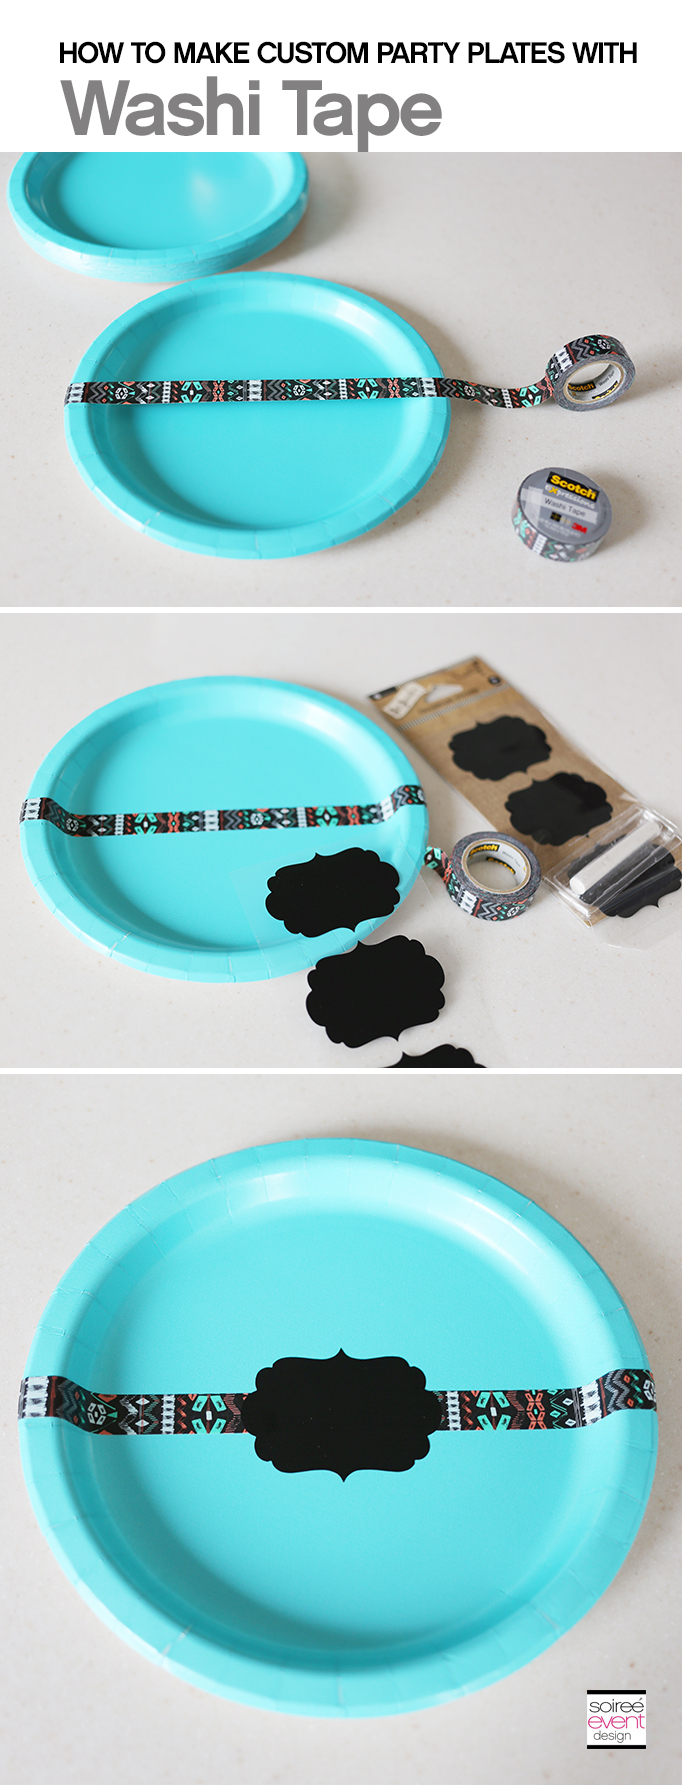 DIY Washi Tape Custom Plates